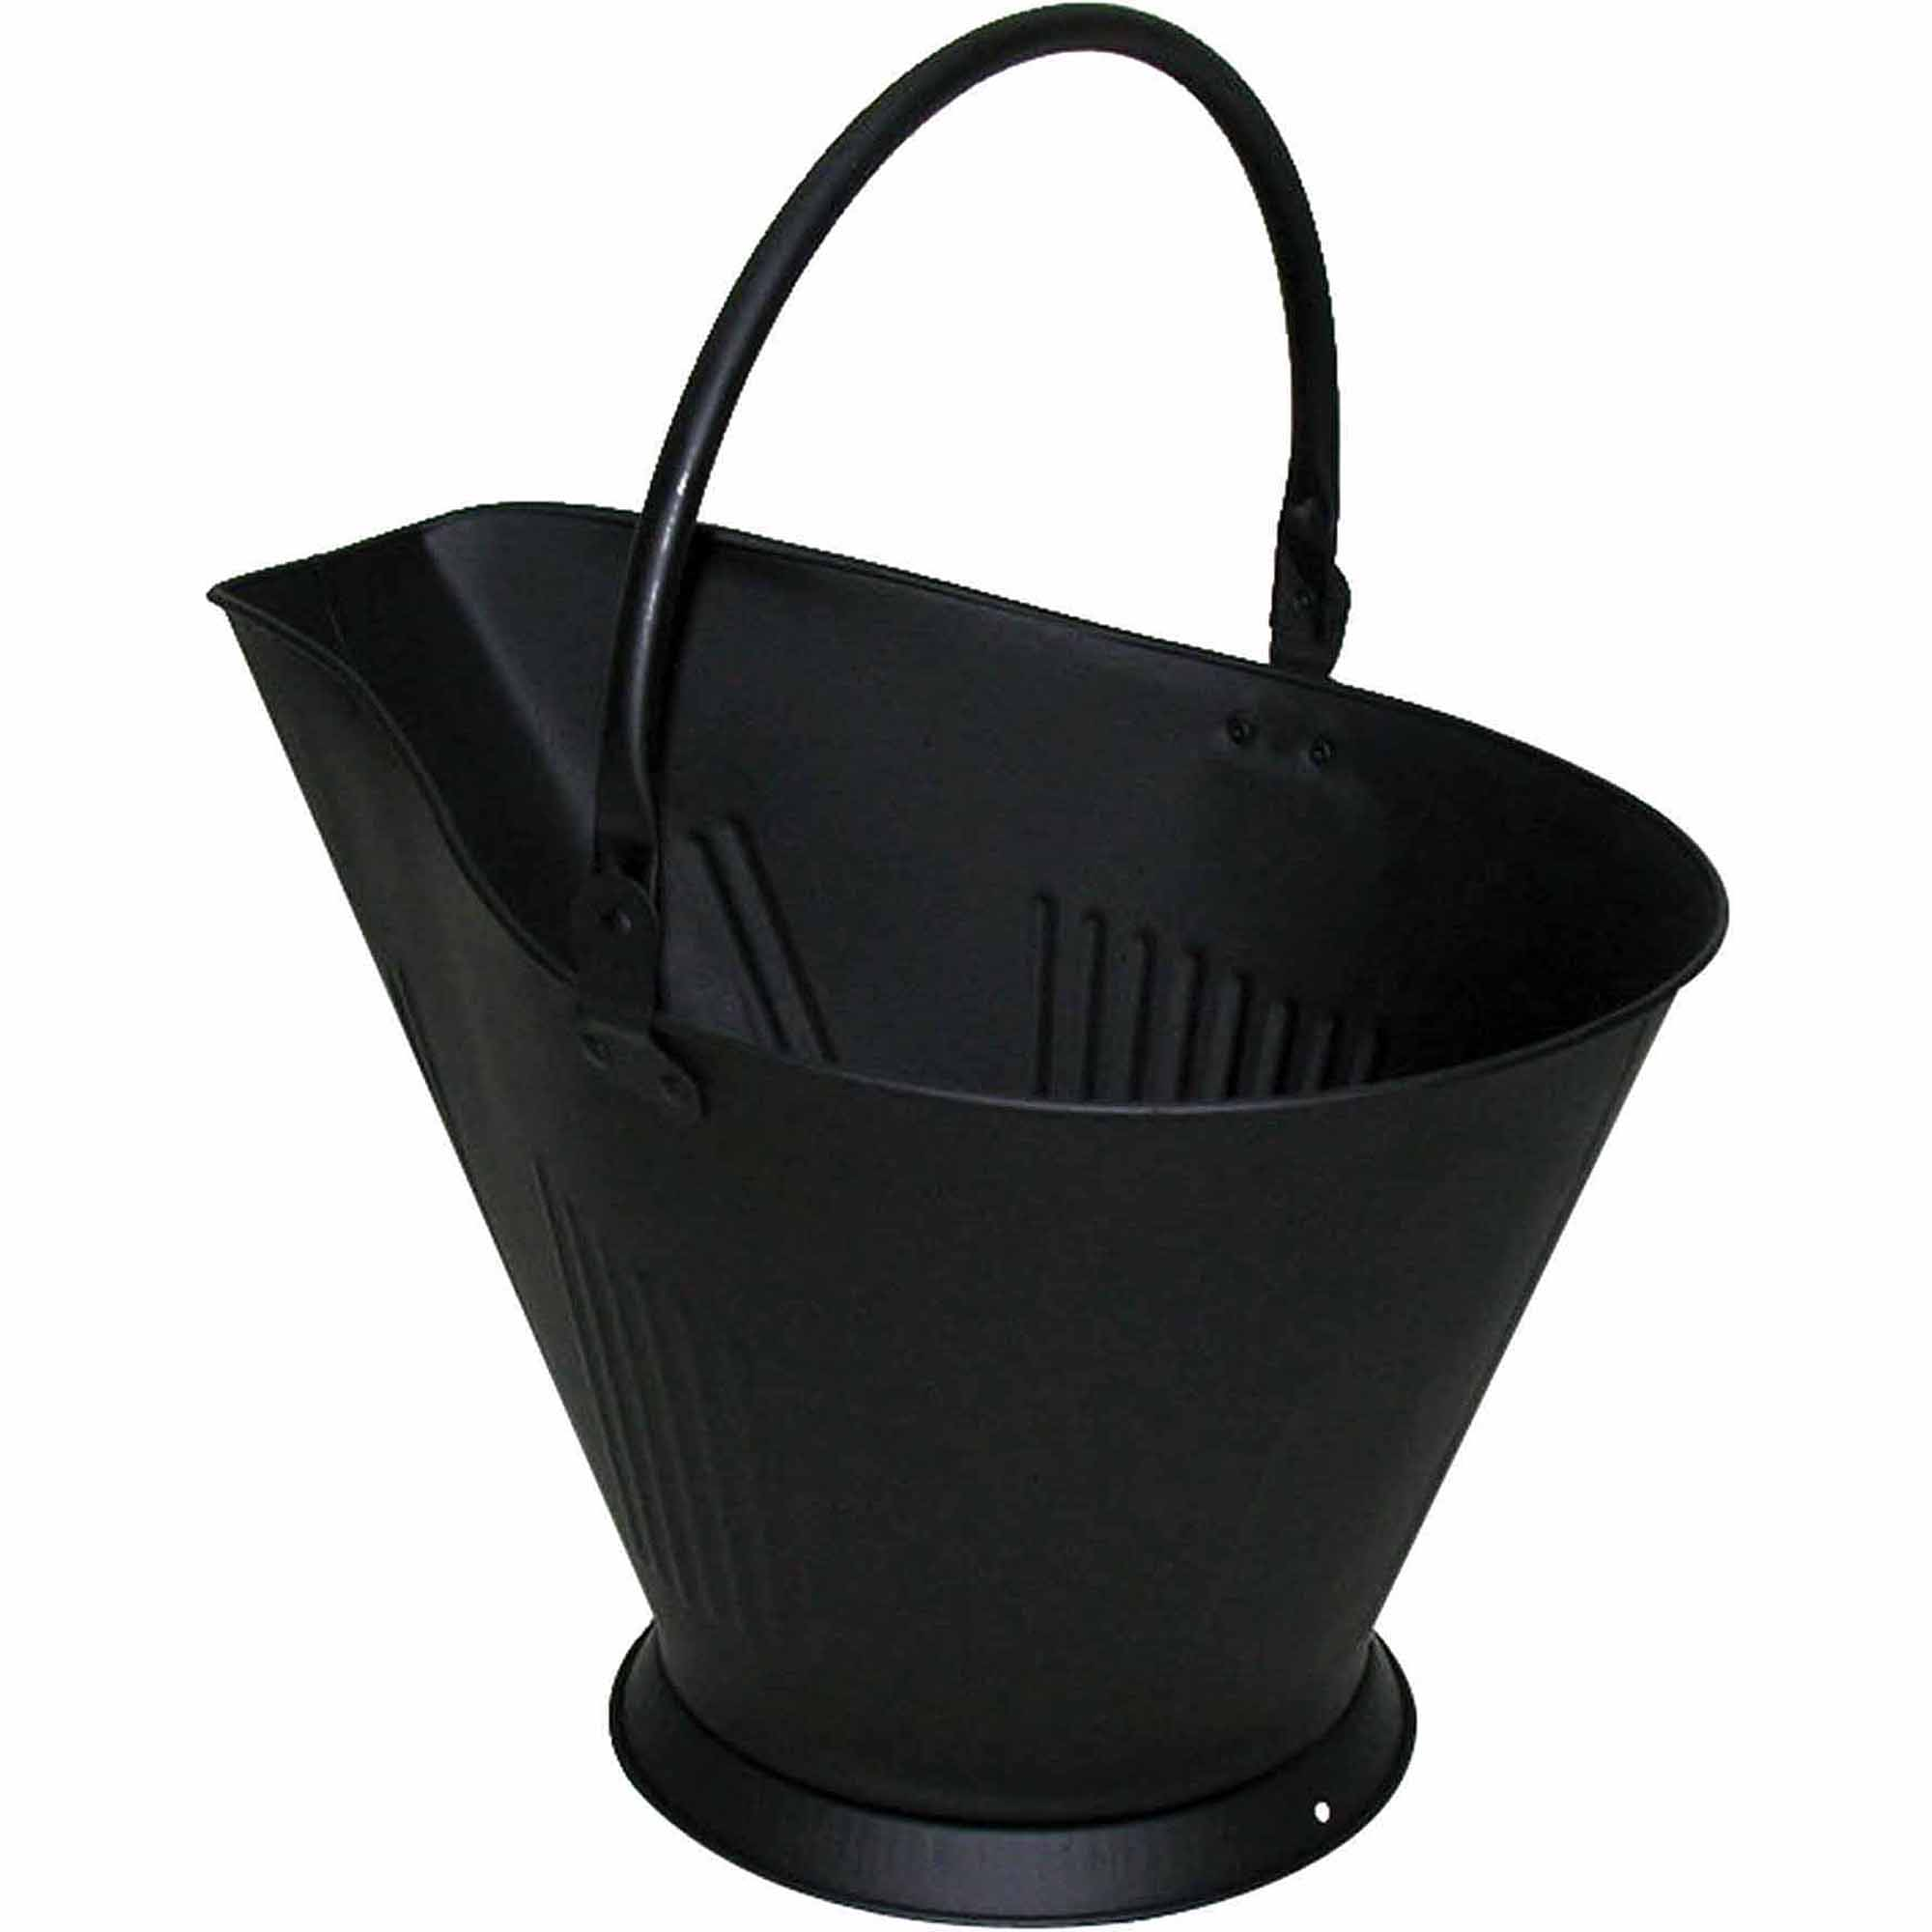 Pleasant Hearth Coal Hod, Black